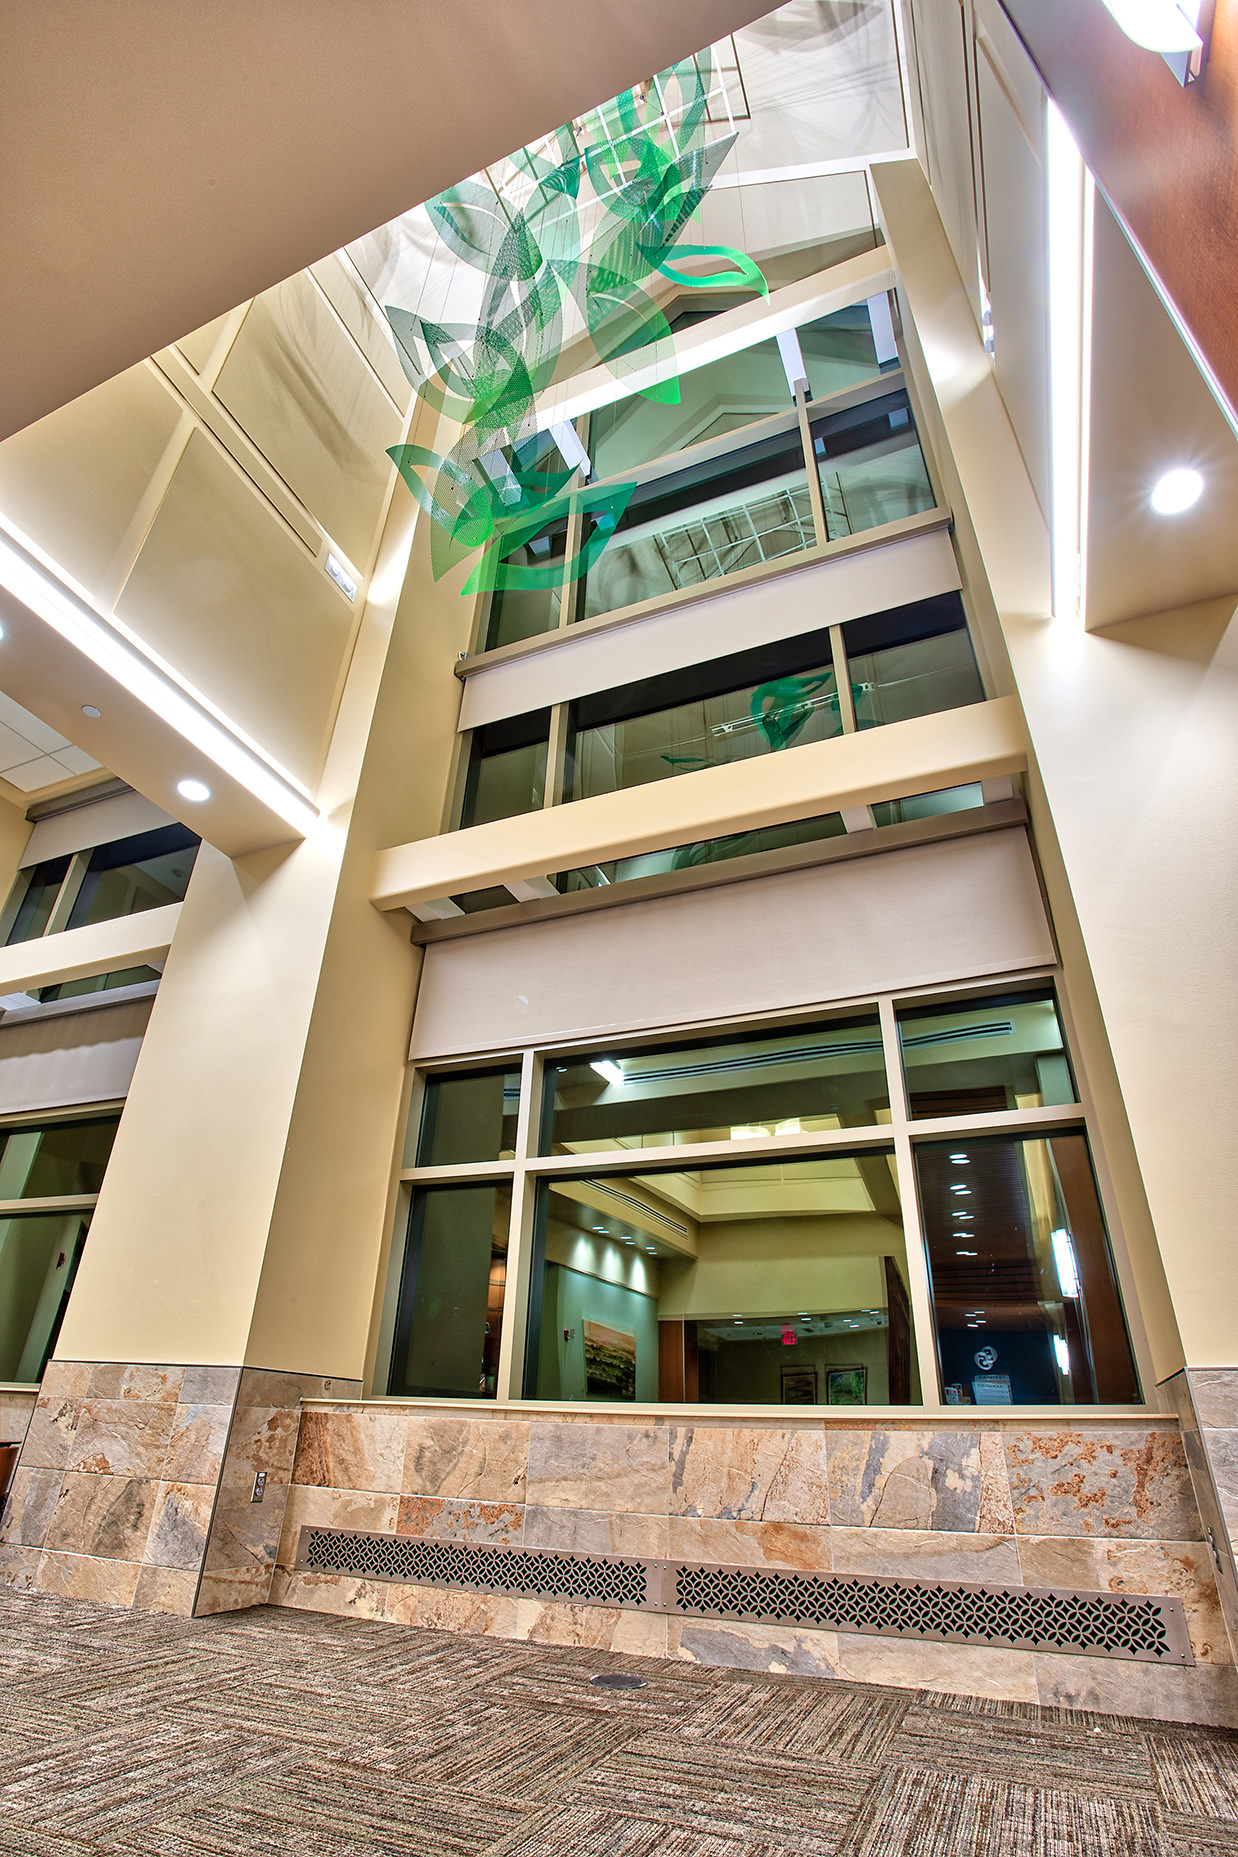 Spring suspended sculpture by Talley Fisher in an atrium in Riverside Regional Medical Center